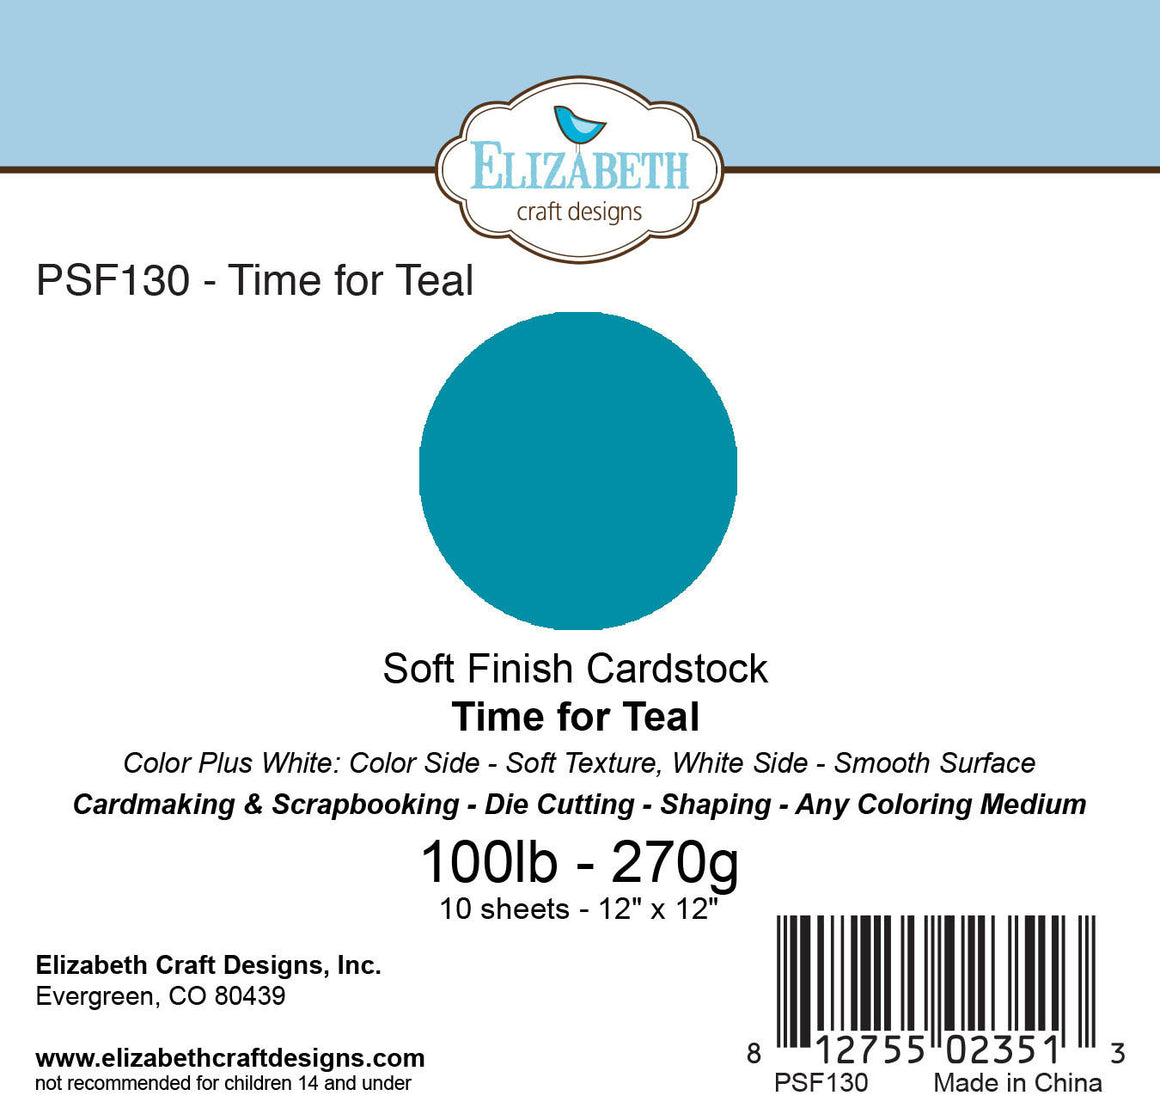 Soft Finish Cardstock, Time for Teal